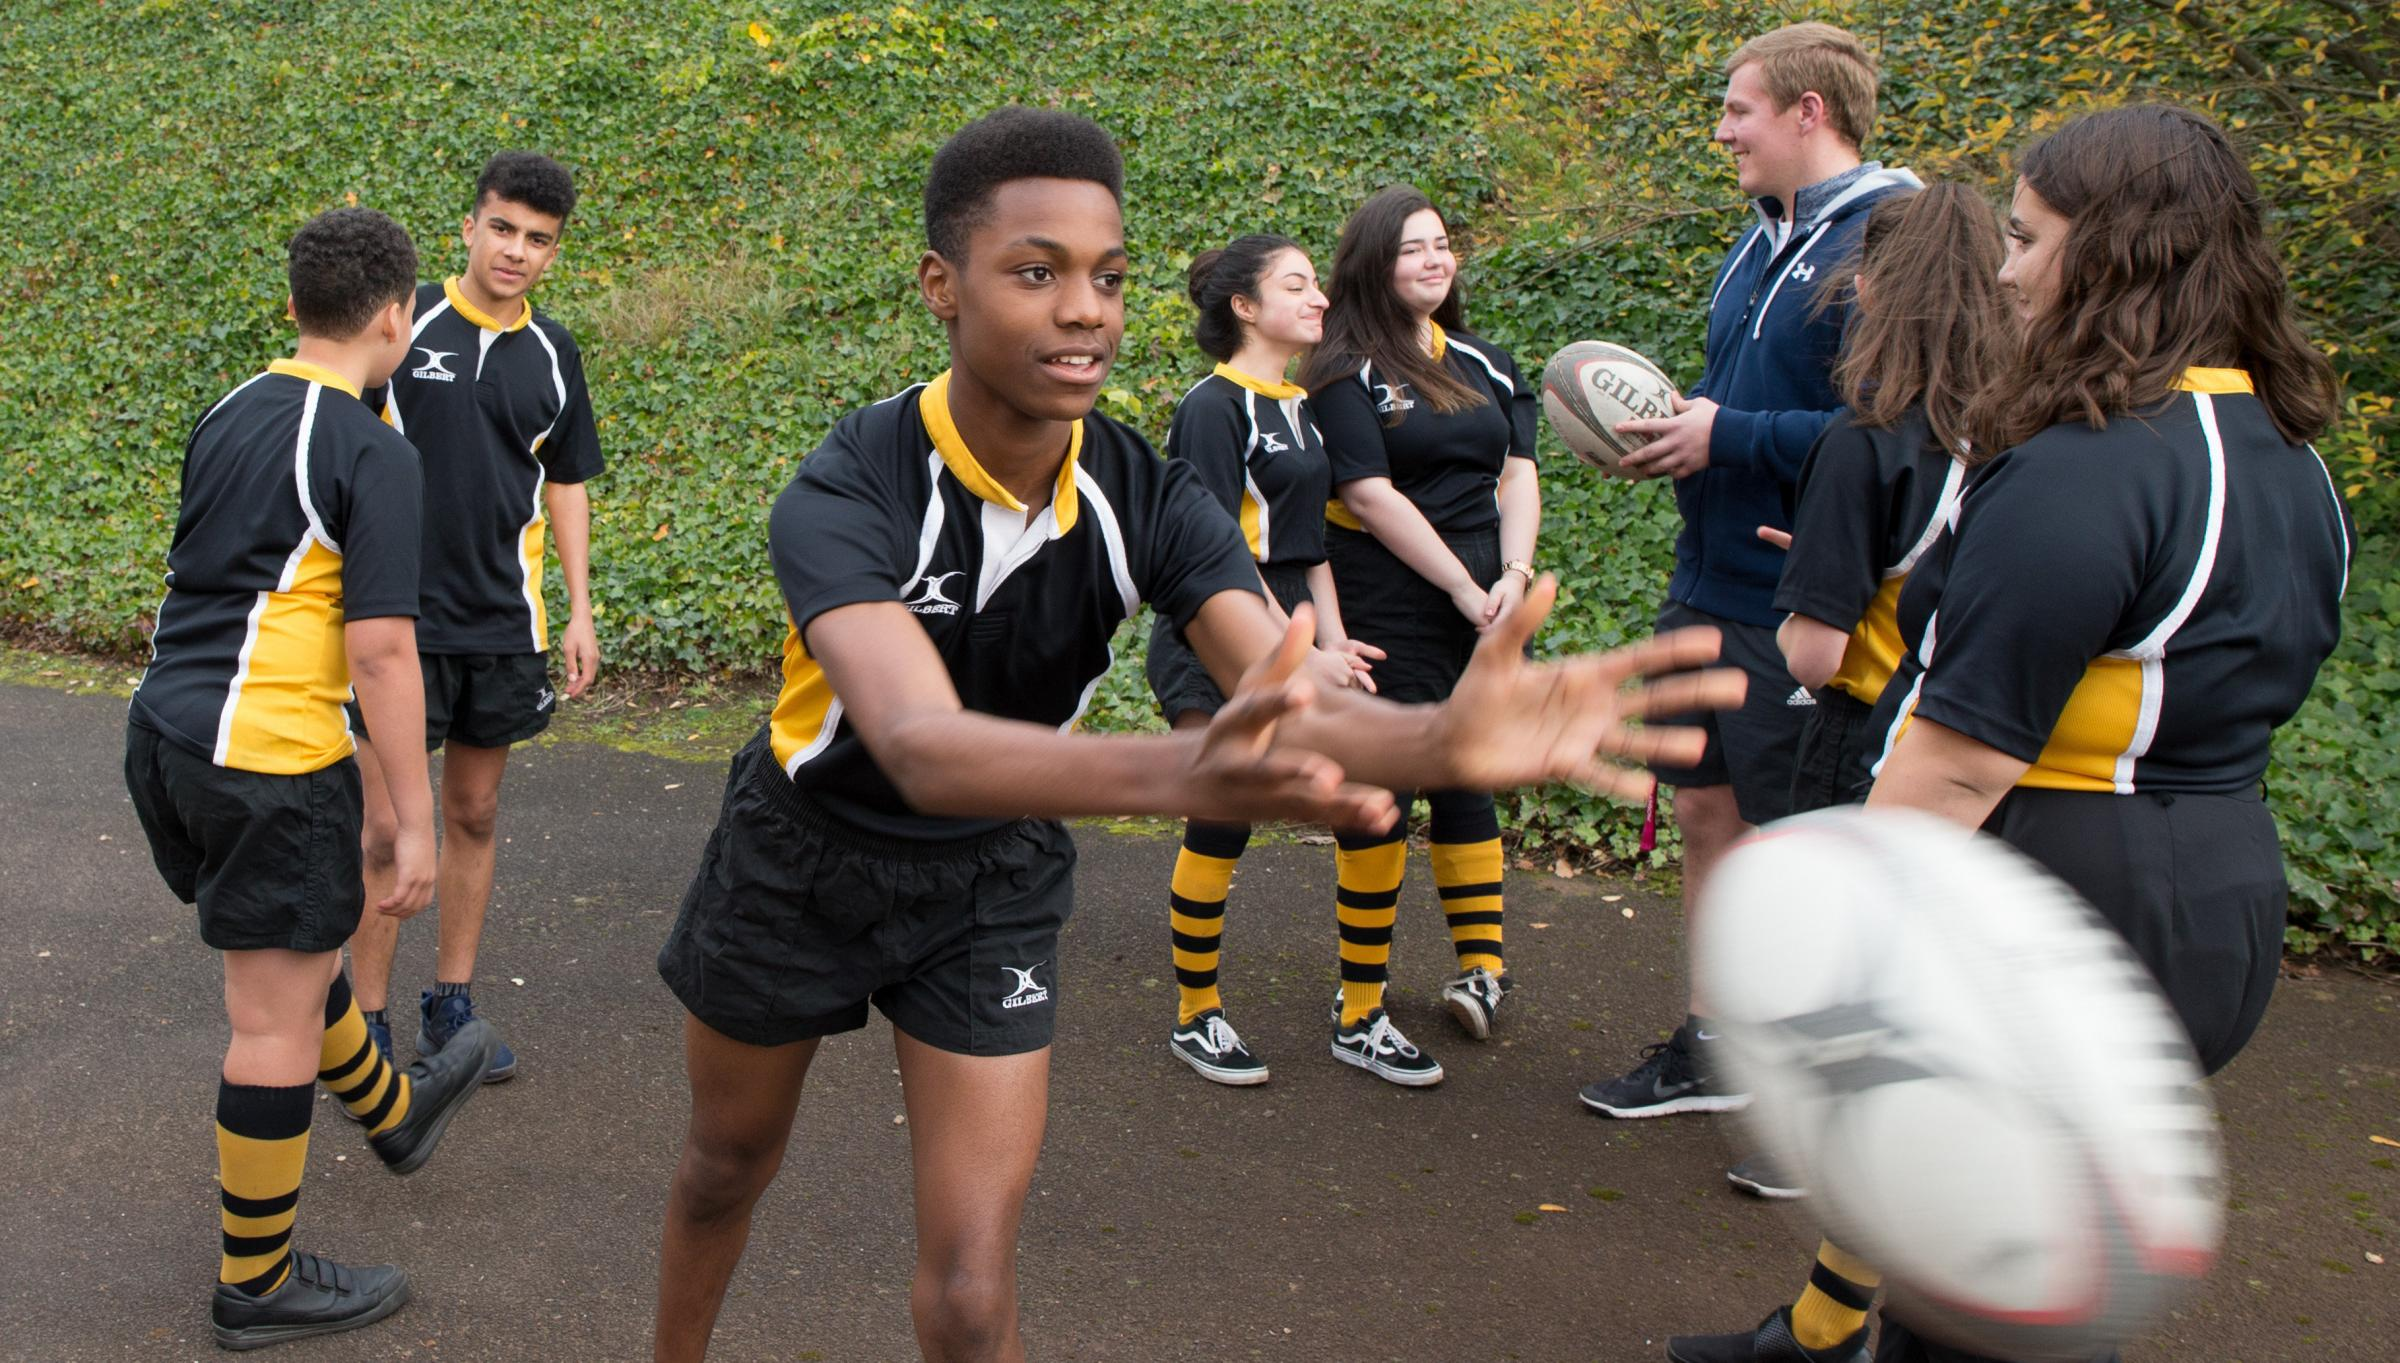 Scottish Rugby is funding a scheme to get more state school pupils playing rugby â both girls and boys - and schools in more disadvantaged areas are finding it has improved attendance and behaviour..Pictured St Thomas Aquinas Pupils have a training sessi